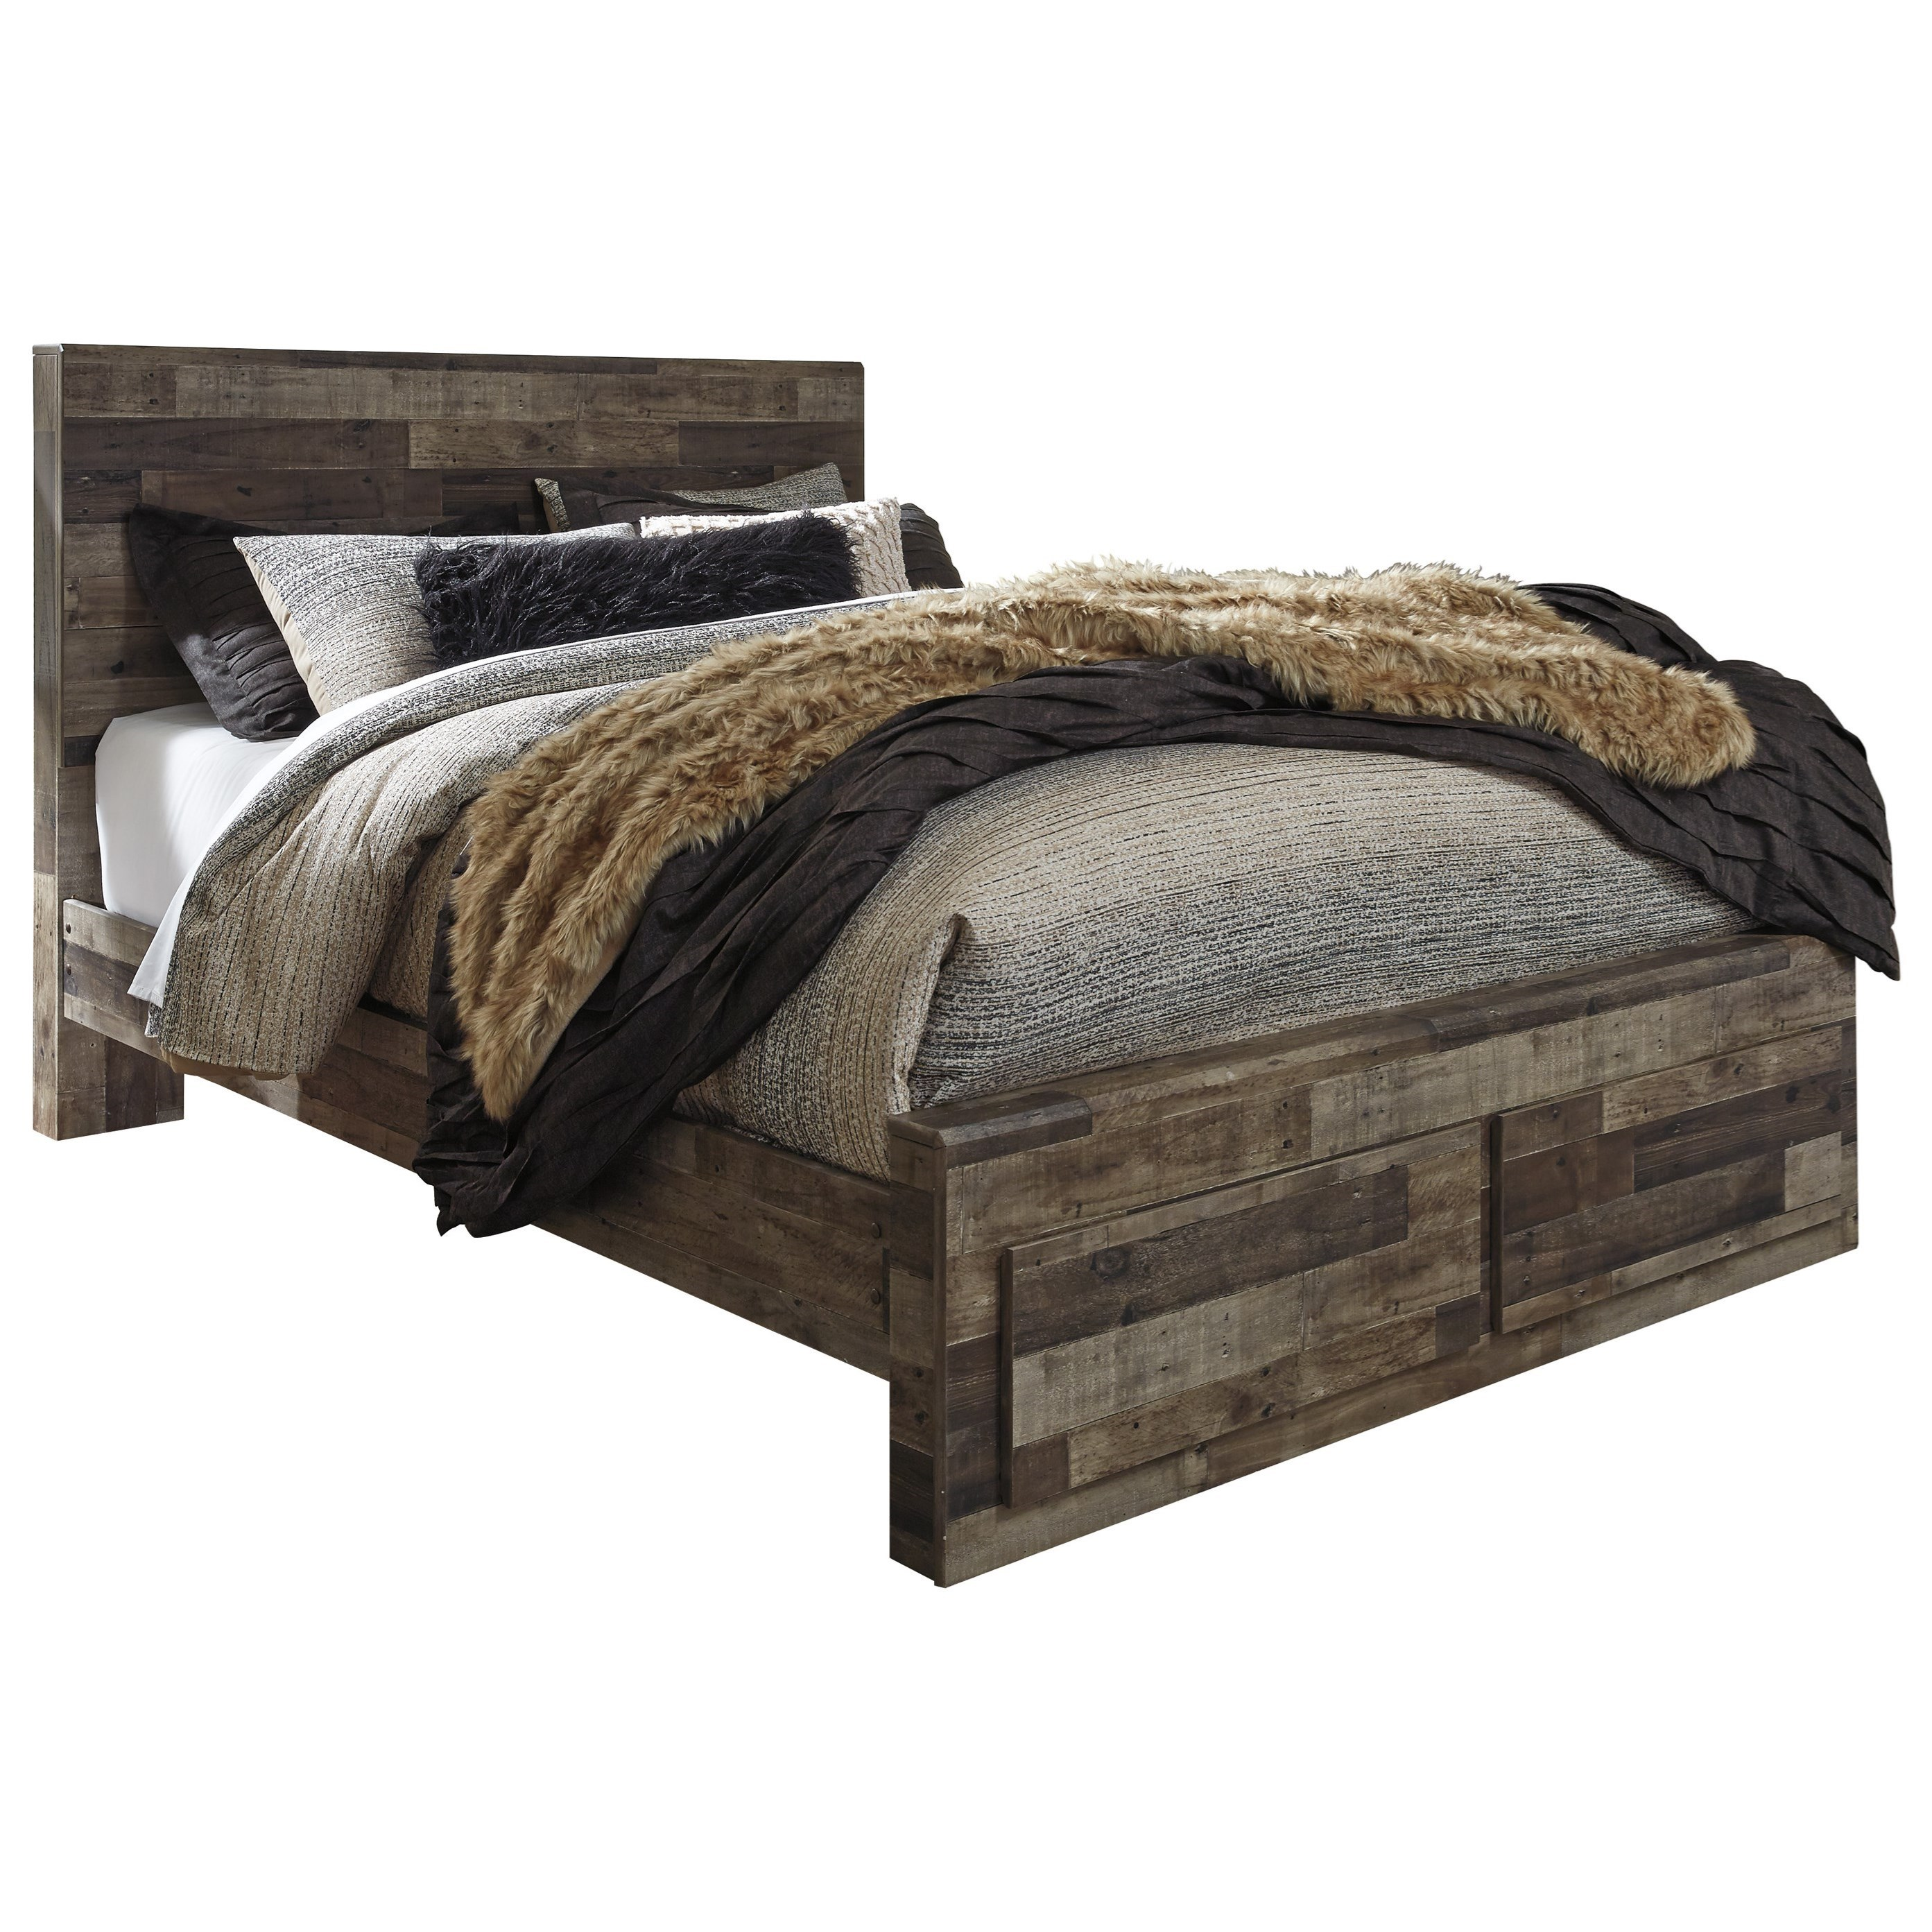 Derekson Queen Storage Bed by Benchcraft at Fisher Home Furnishings